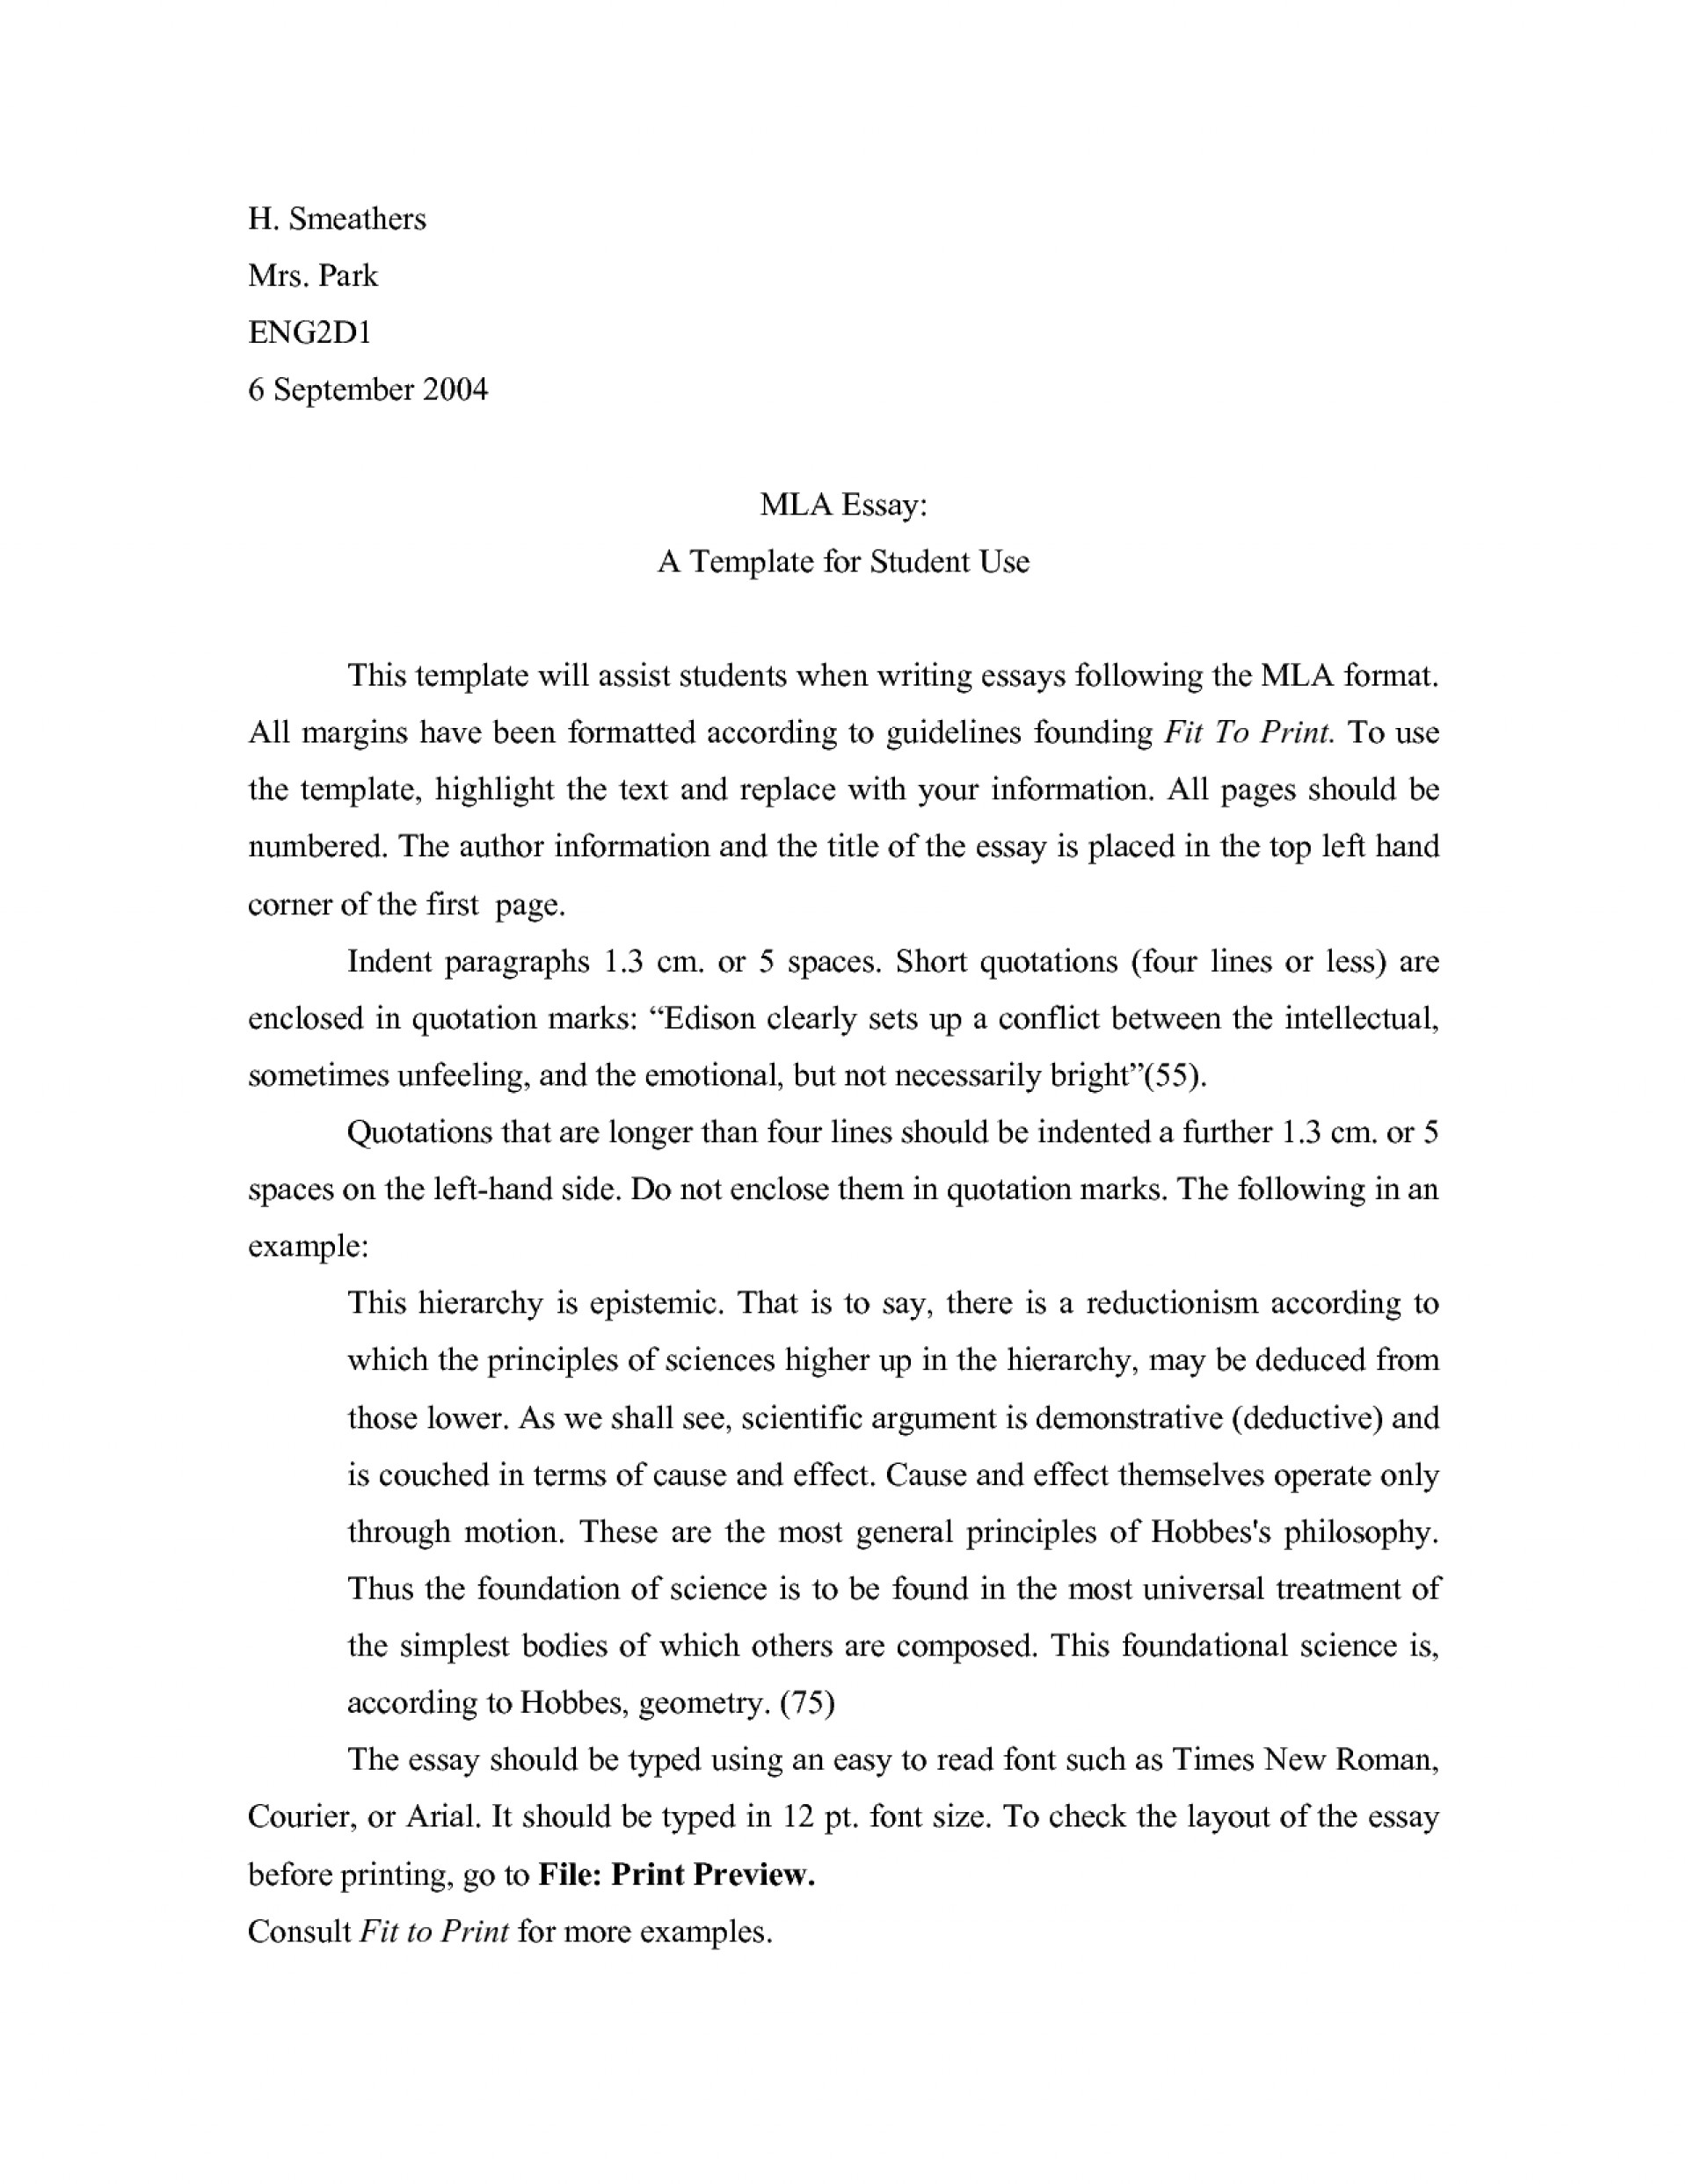 006 Research Paper Mla Format Template Awesome Outline Example 1920